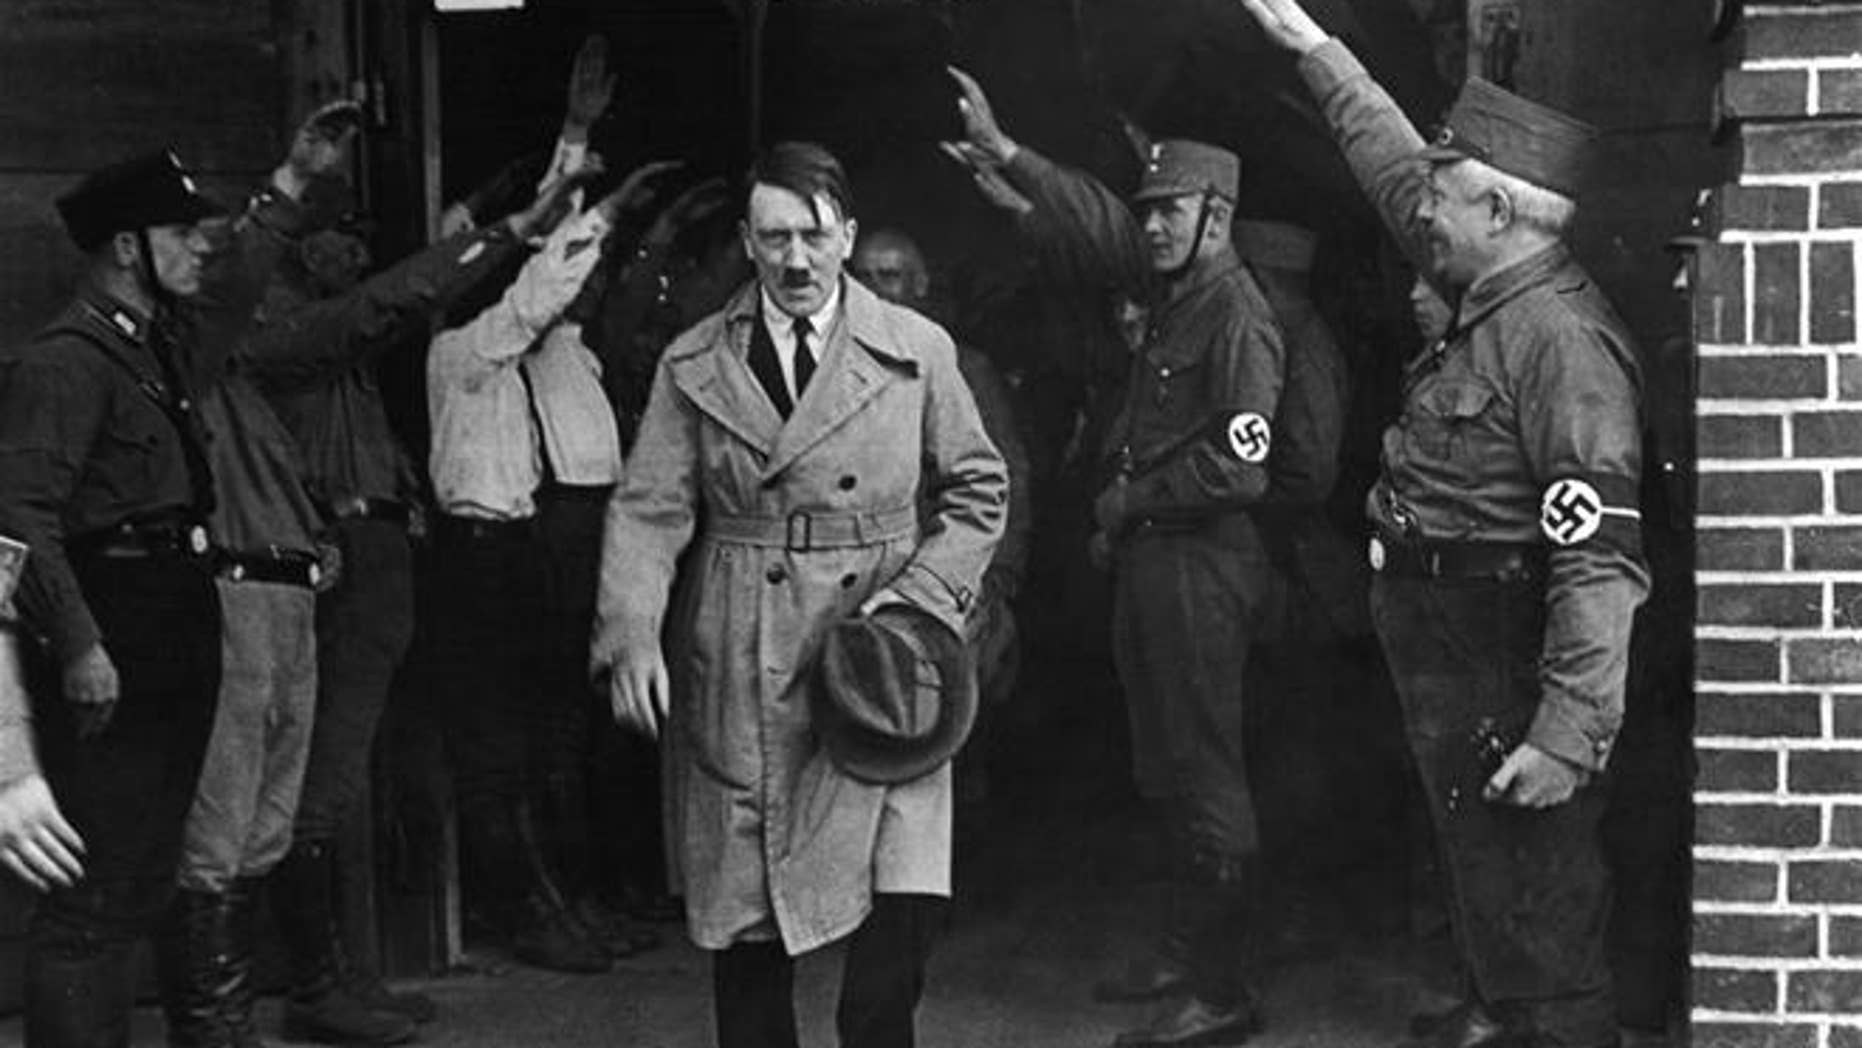 Adolf Hitler, leader of the National Socialists, emerges from the party's Munich headquarters.